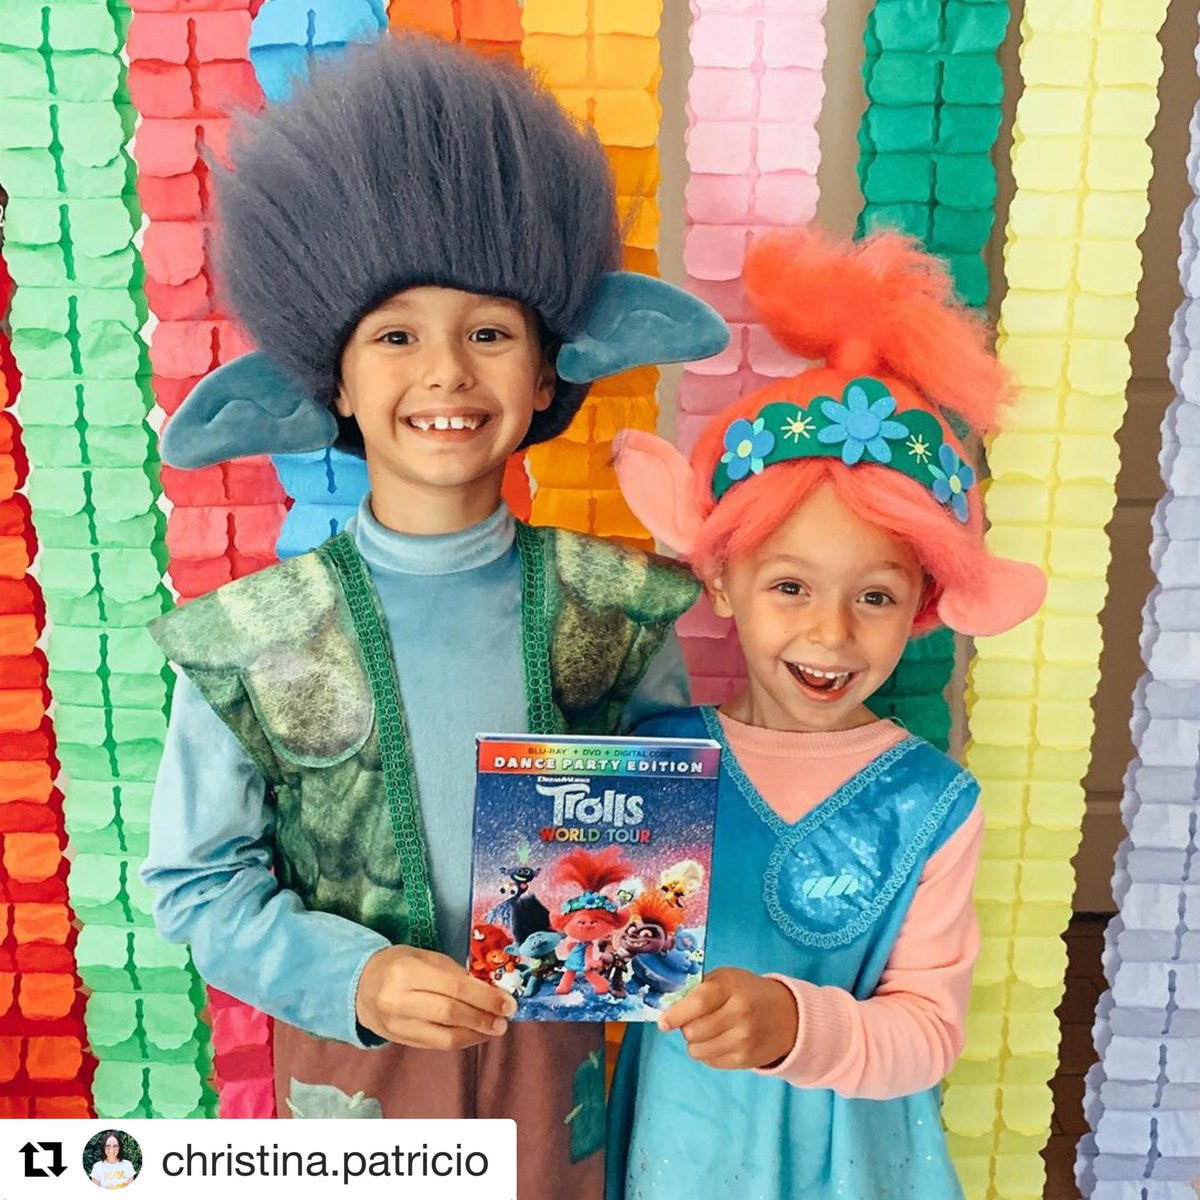 Repost @CMPatricio   #Trolls2 comes out on DVD and Blu Ray tomorrow July 7th!   #disguisecostumes #costume #halloween #trolls #poppy #branch #barb #halloweencostume <br>http://pic.twitter.com/BS1u9YBBVy